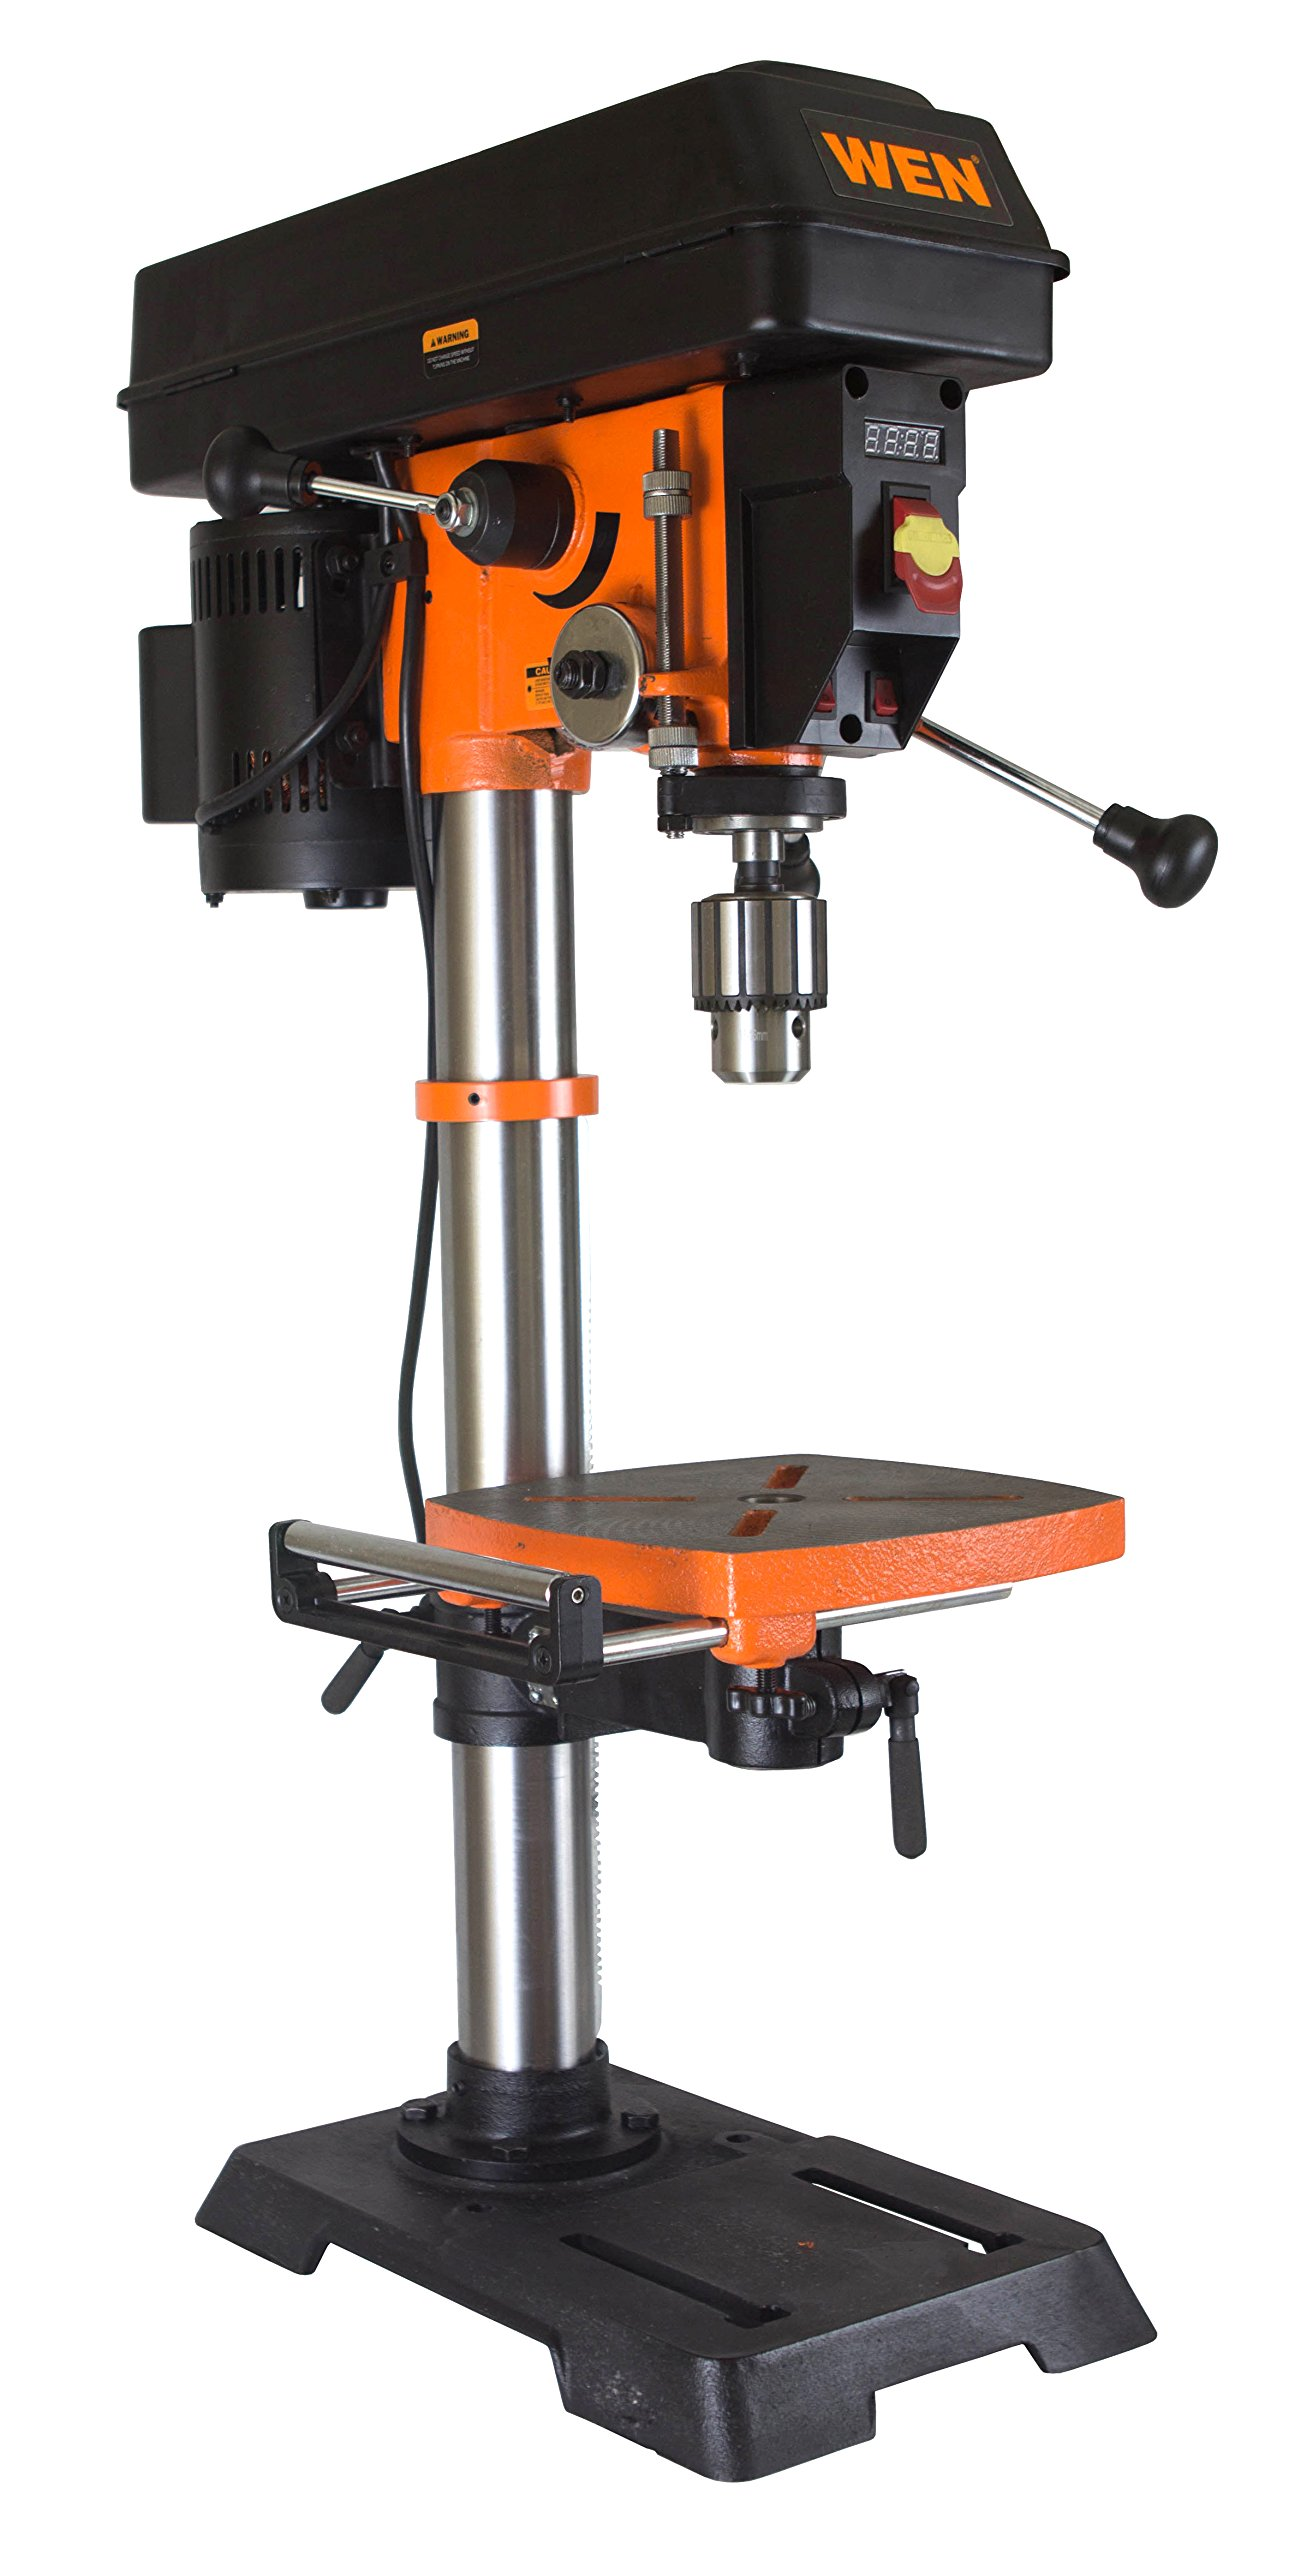 Wen 4214 12-Inch Variable Speed Drill Press 12 Inch Variable Speed 10